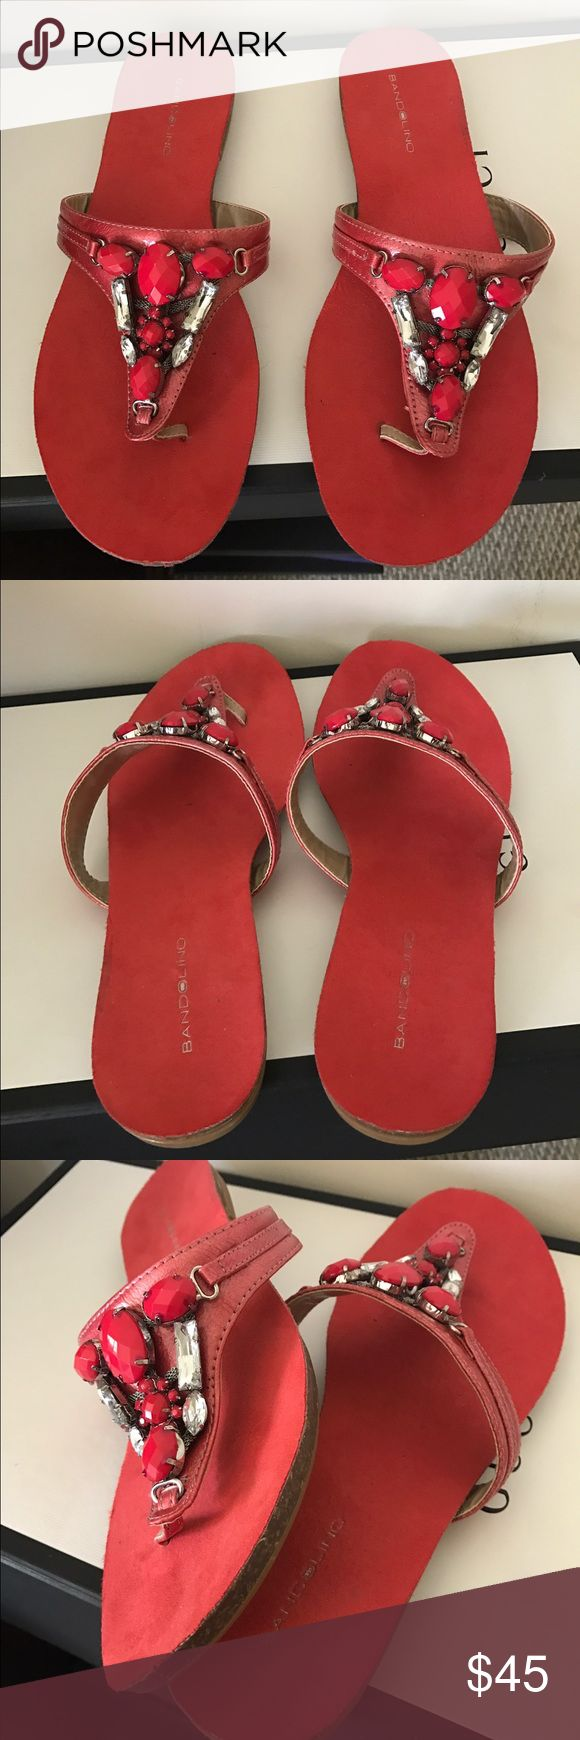 New Bandolino Sandals Coral Stones Embraced Sandals Bandolino Shoes Mules & Clogs